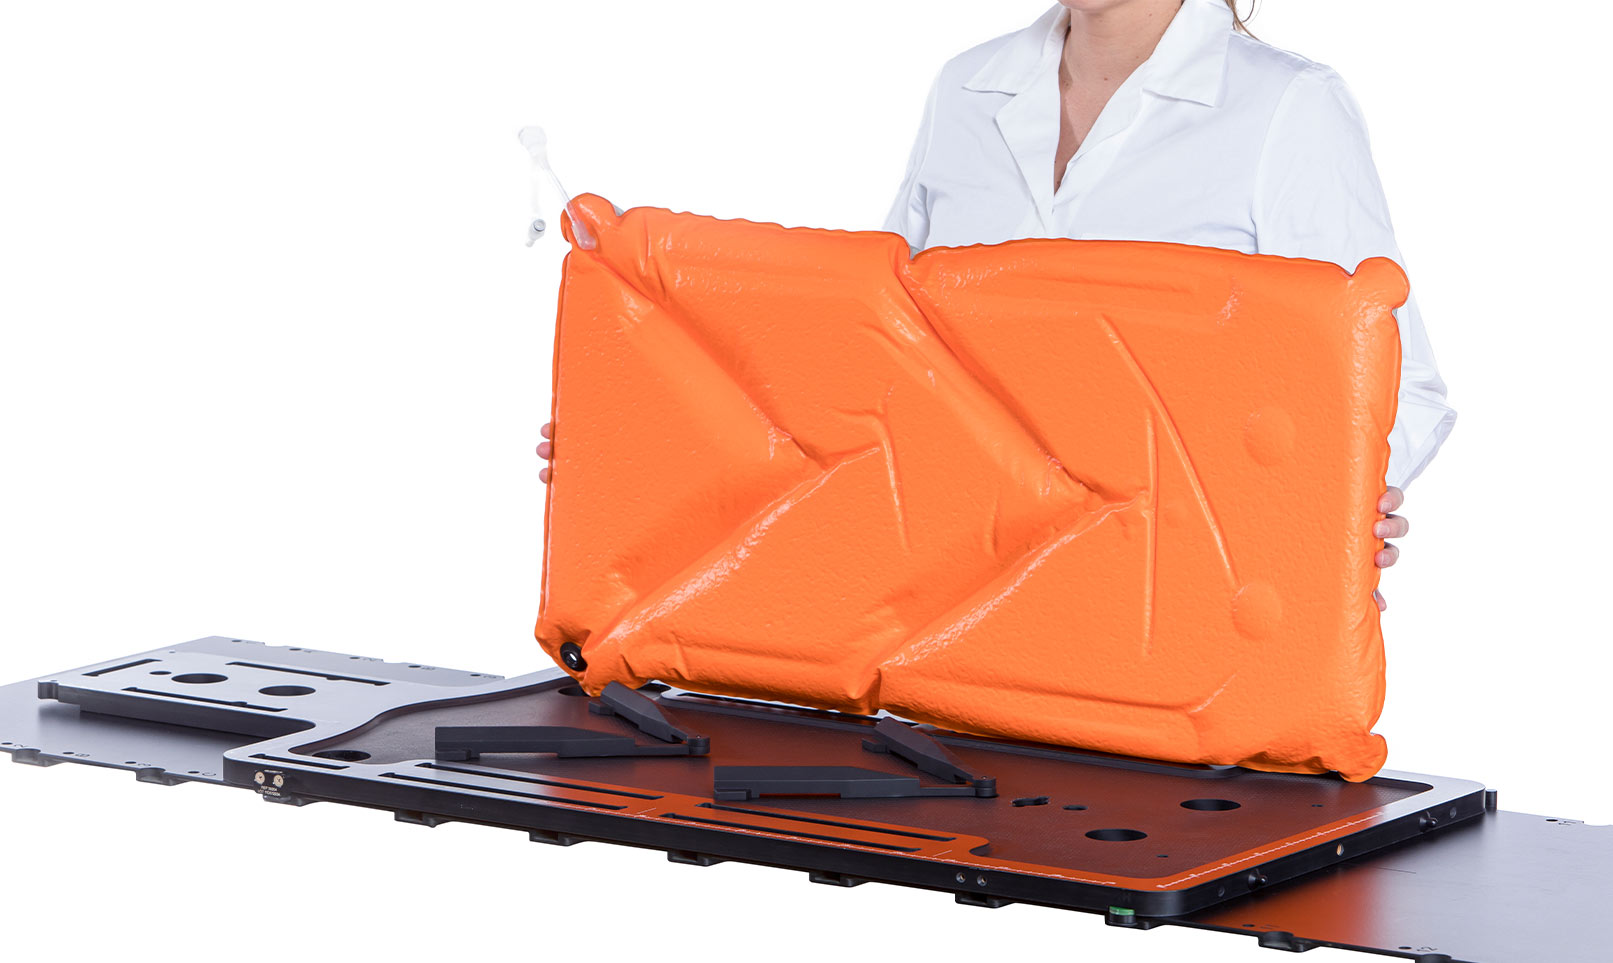 Woman holding an Orange Orfit Vacuum Bag over a baseplate with two indexing bars.